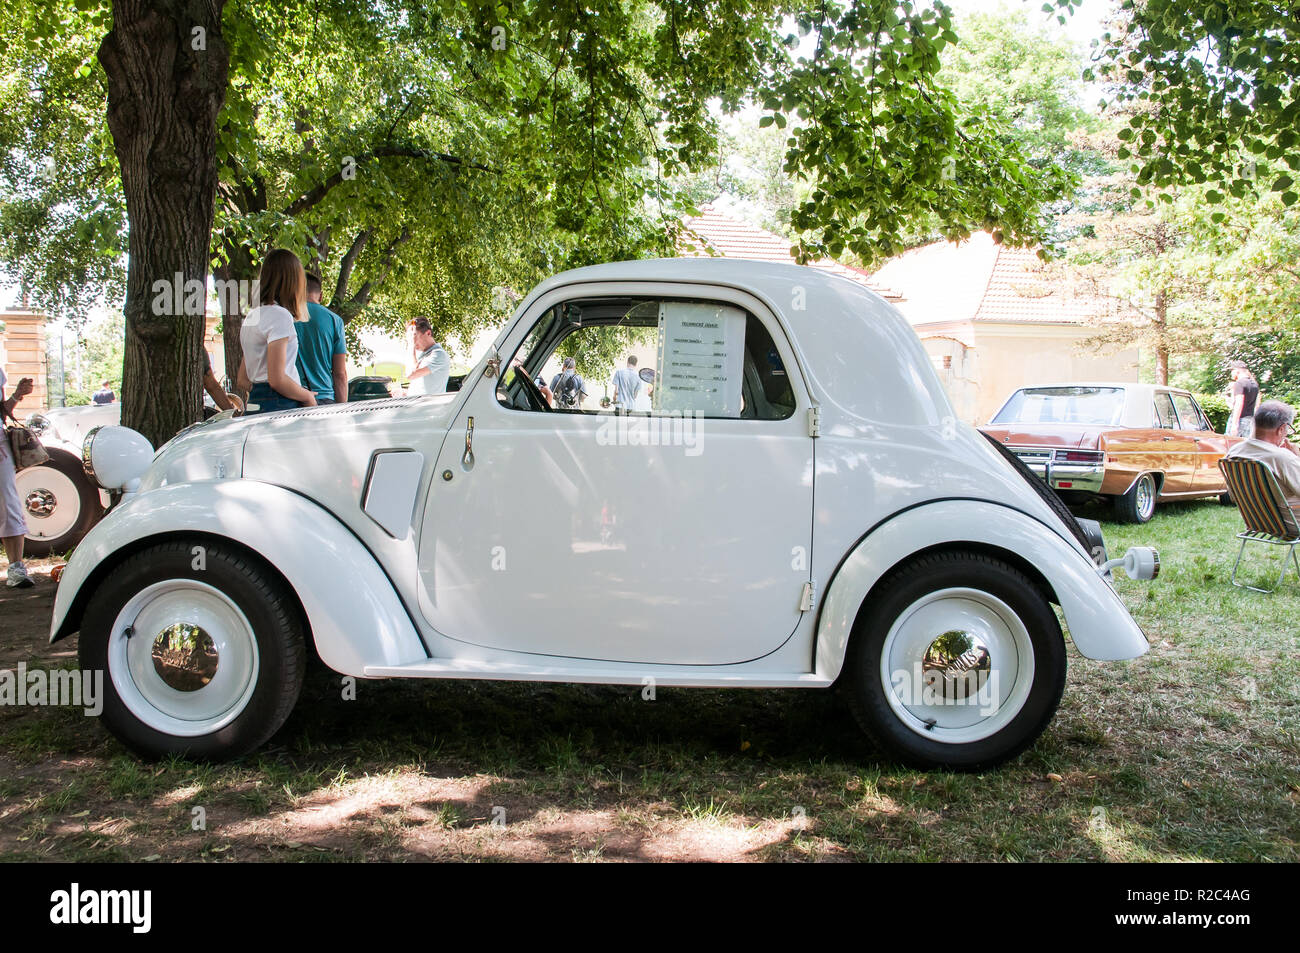 Prague, Czech Republic, May 26, 2018, Simca 5 is a small French-Italian passenger car designed by Fiat engineers in Turin. - Stock Image